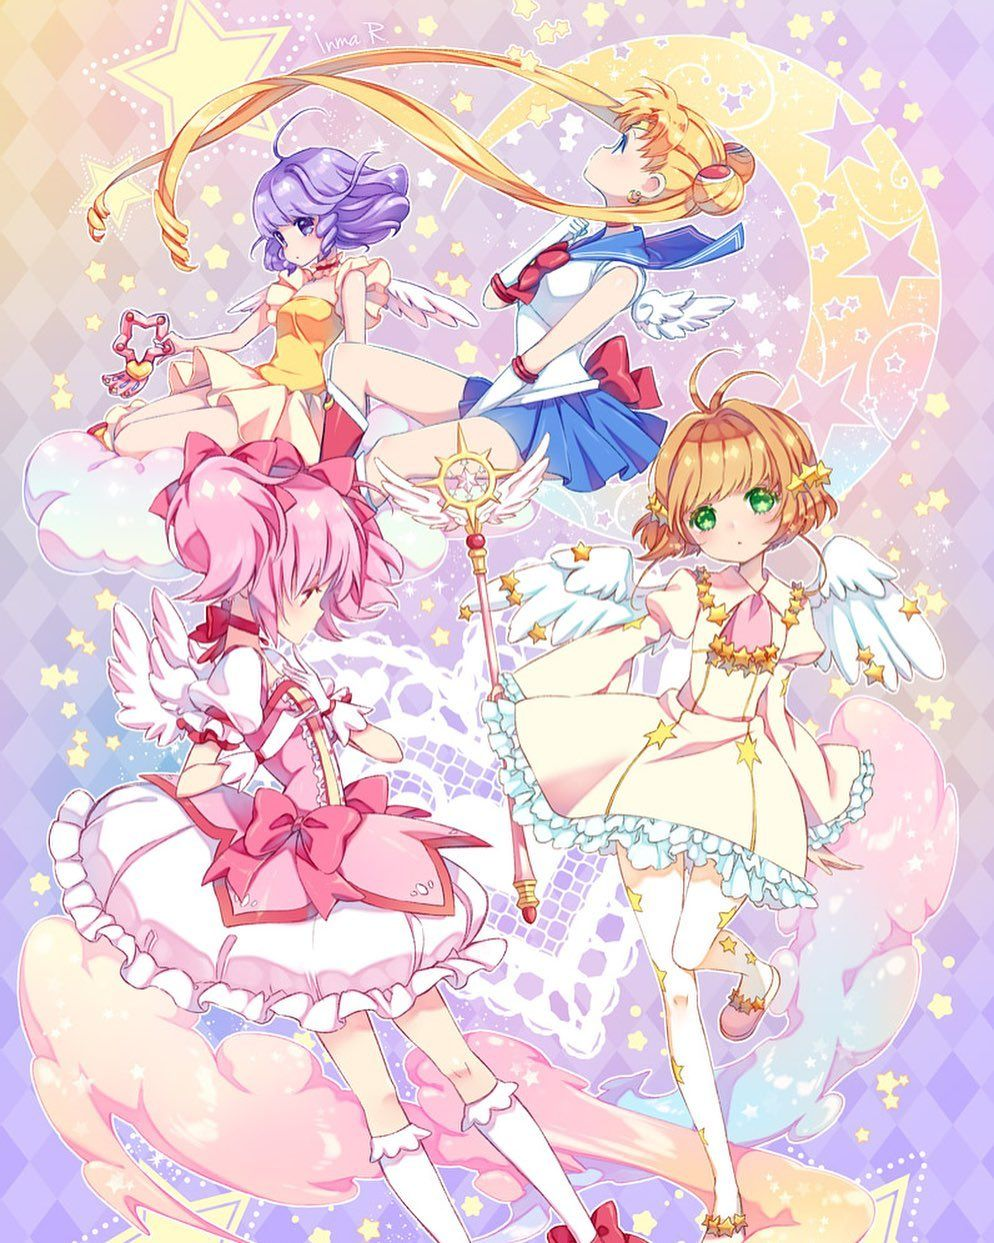 Magical Girl Fan Club On Instagram Magical Girls Unite I Love When Artists Combine Different Series Together A Magical Girl Anime Magical Girl Anime Images